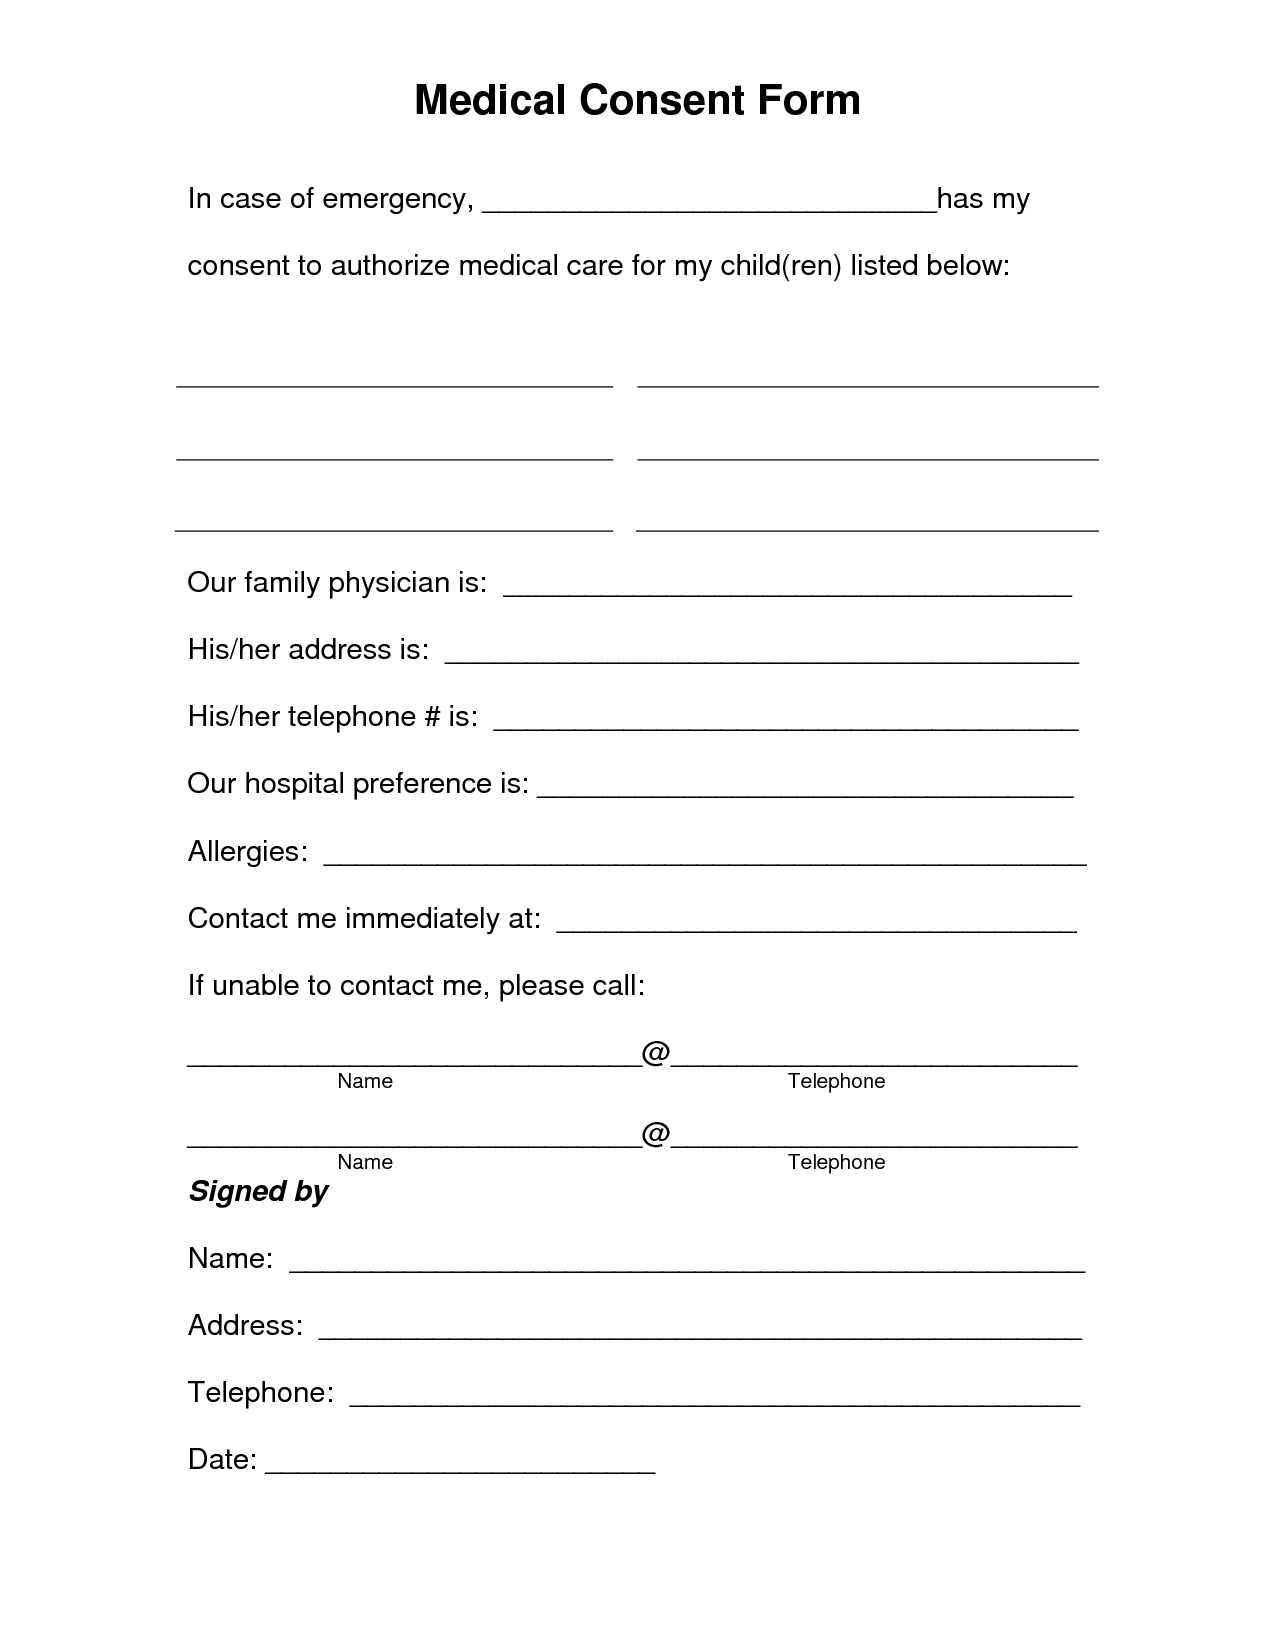 Free Printable Medical Consent Form – Free Child Medical Consent Form